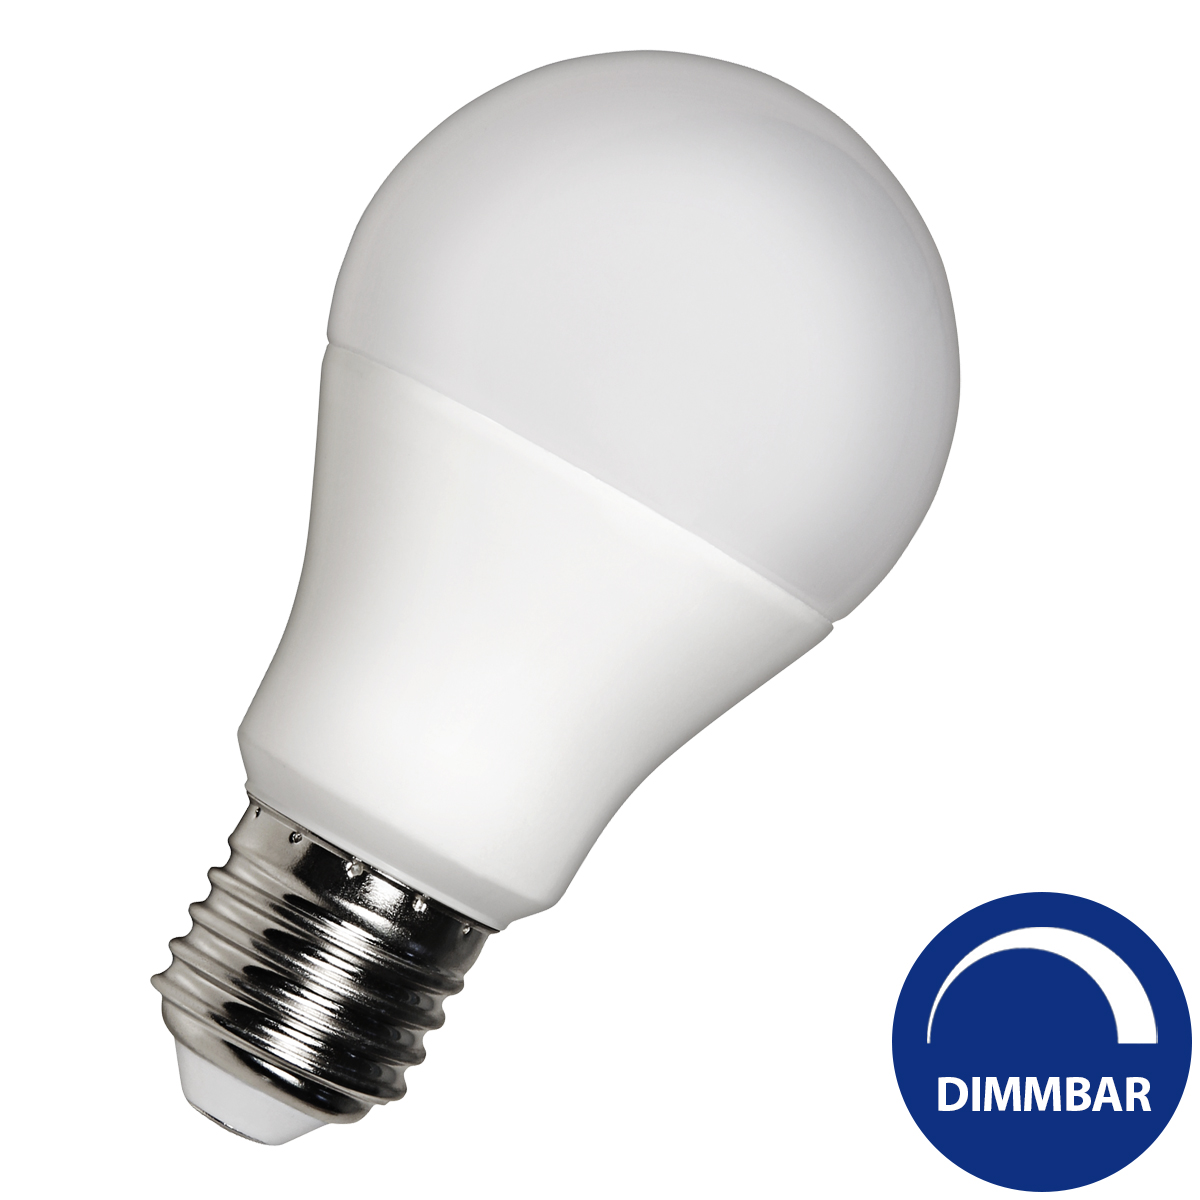 Led Gu4 Dimmbar Led Birne E27 11w 1050lm Warmweiß Dimmbar Gubidu De